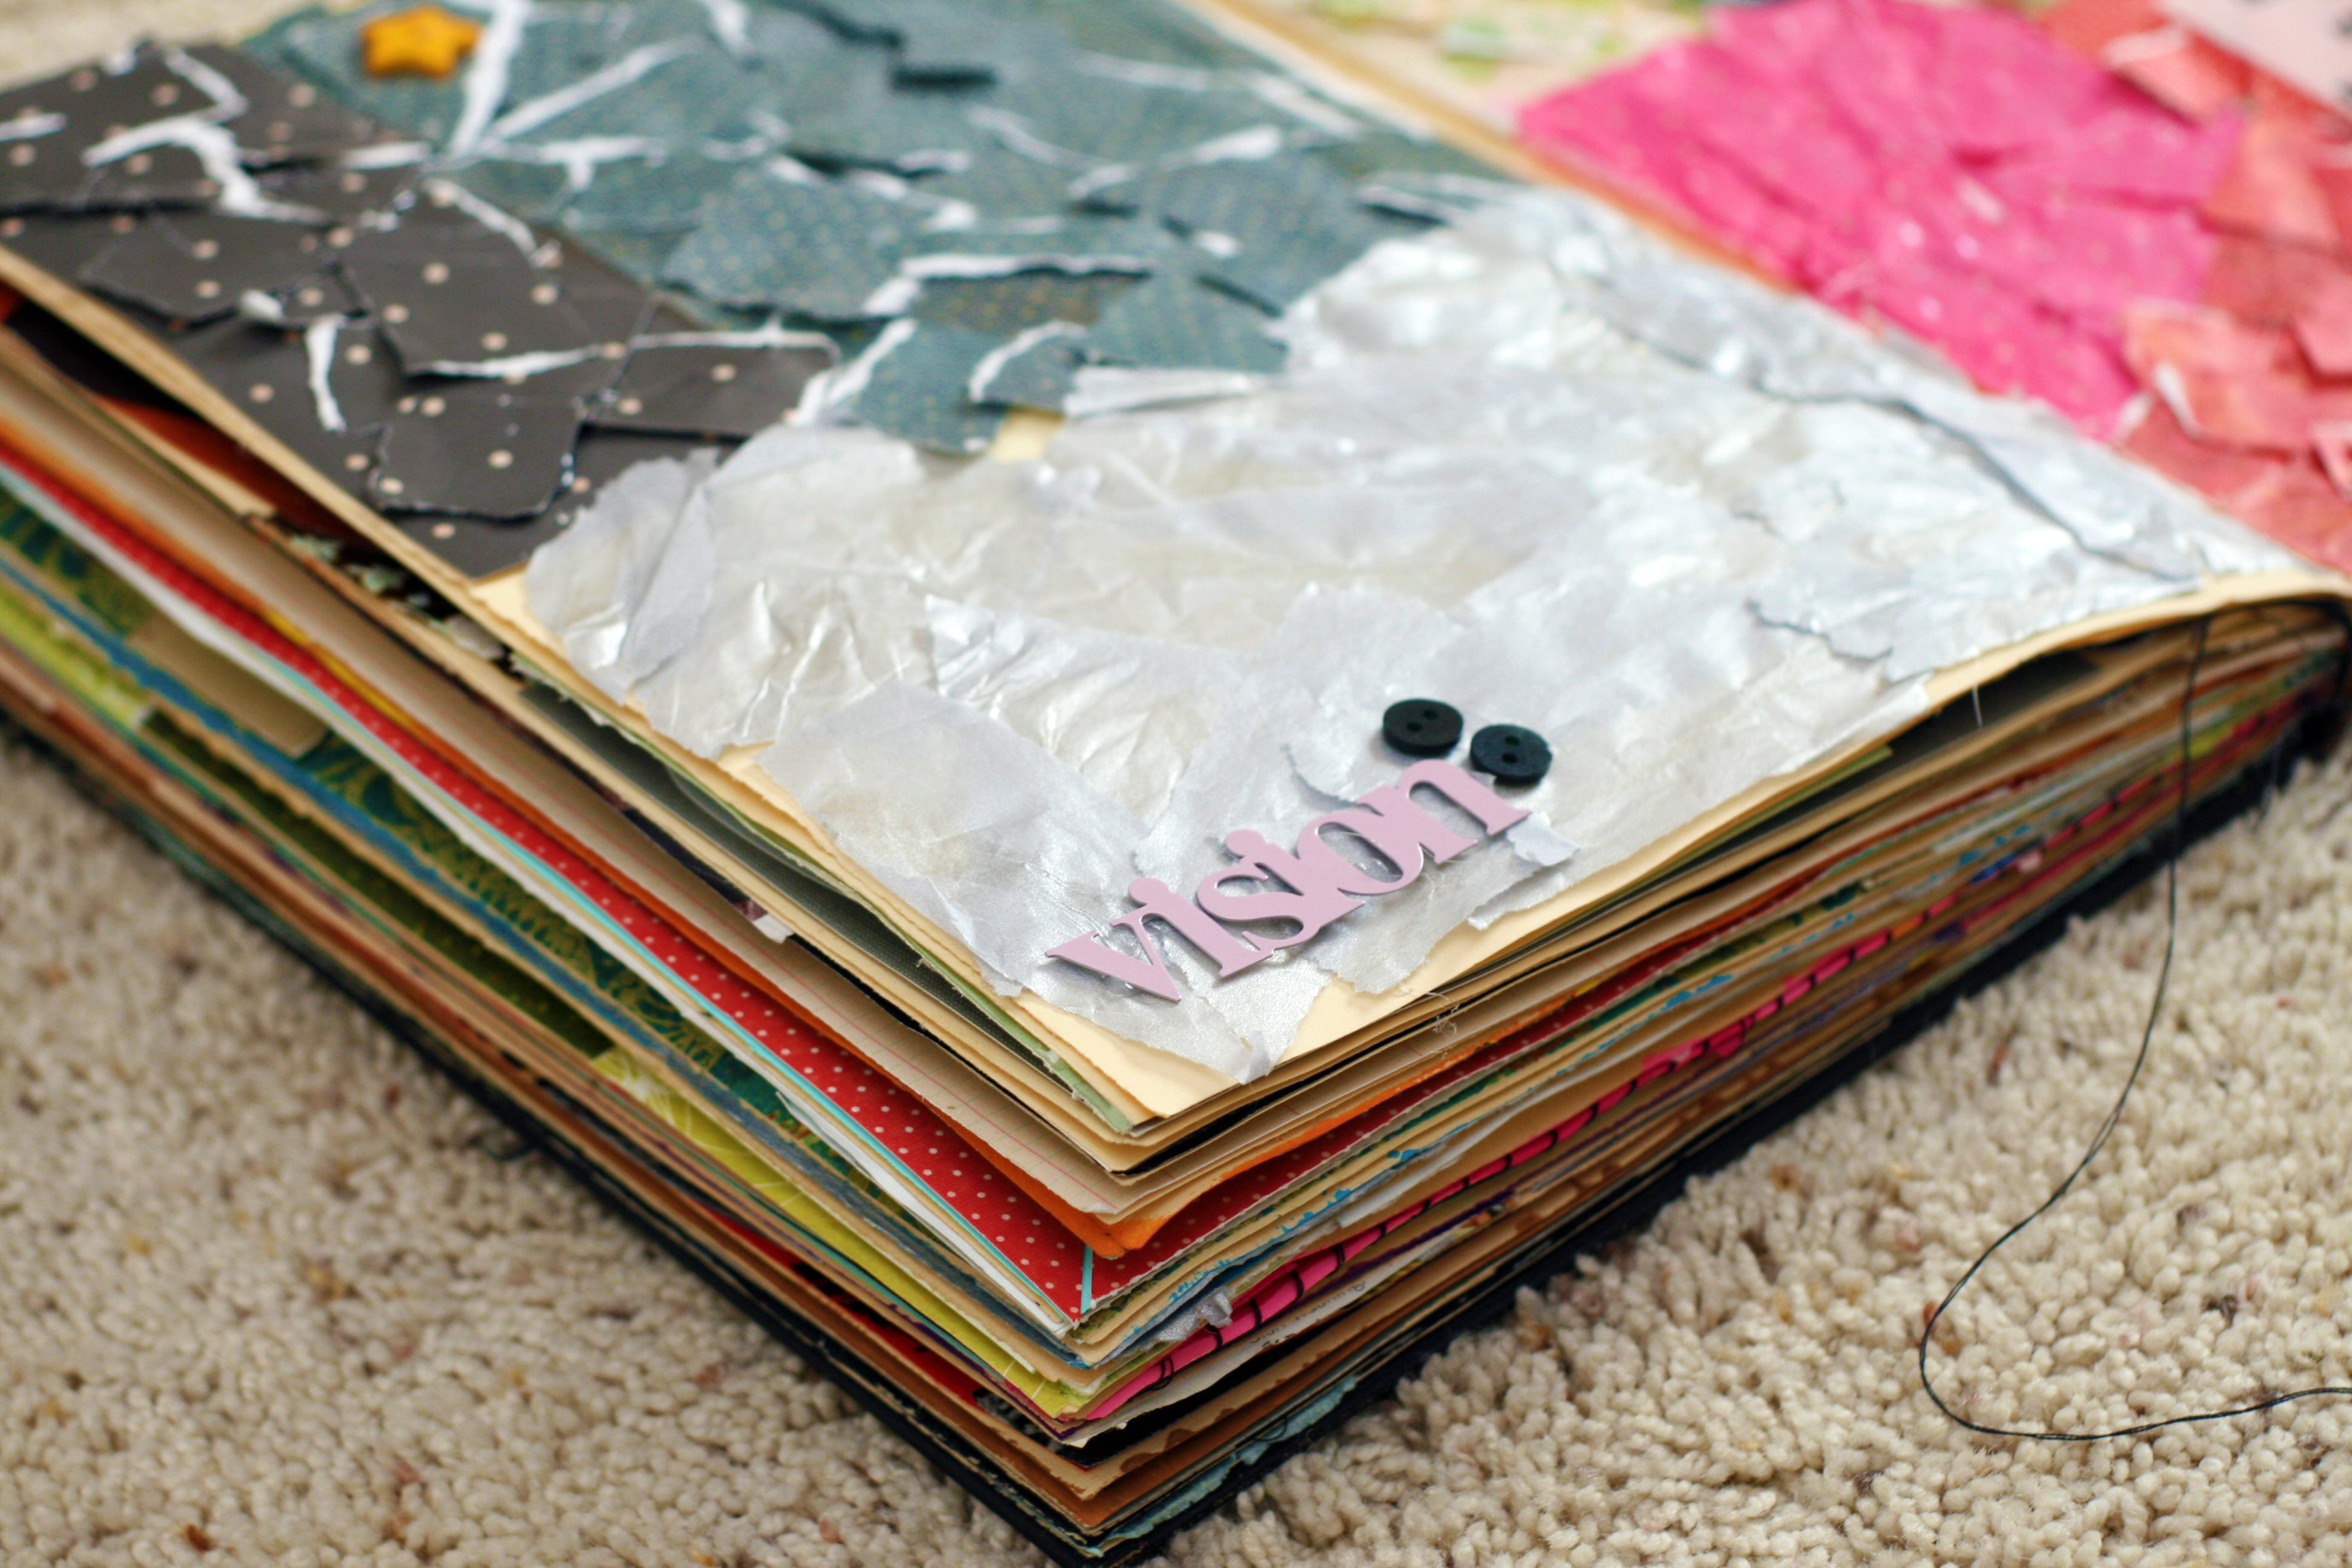 How To Make A Book Homemade : Diy project homemade book colour her hope